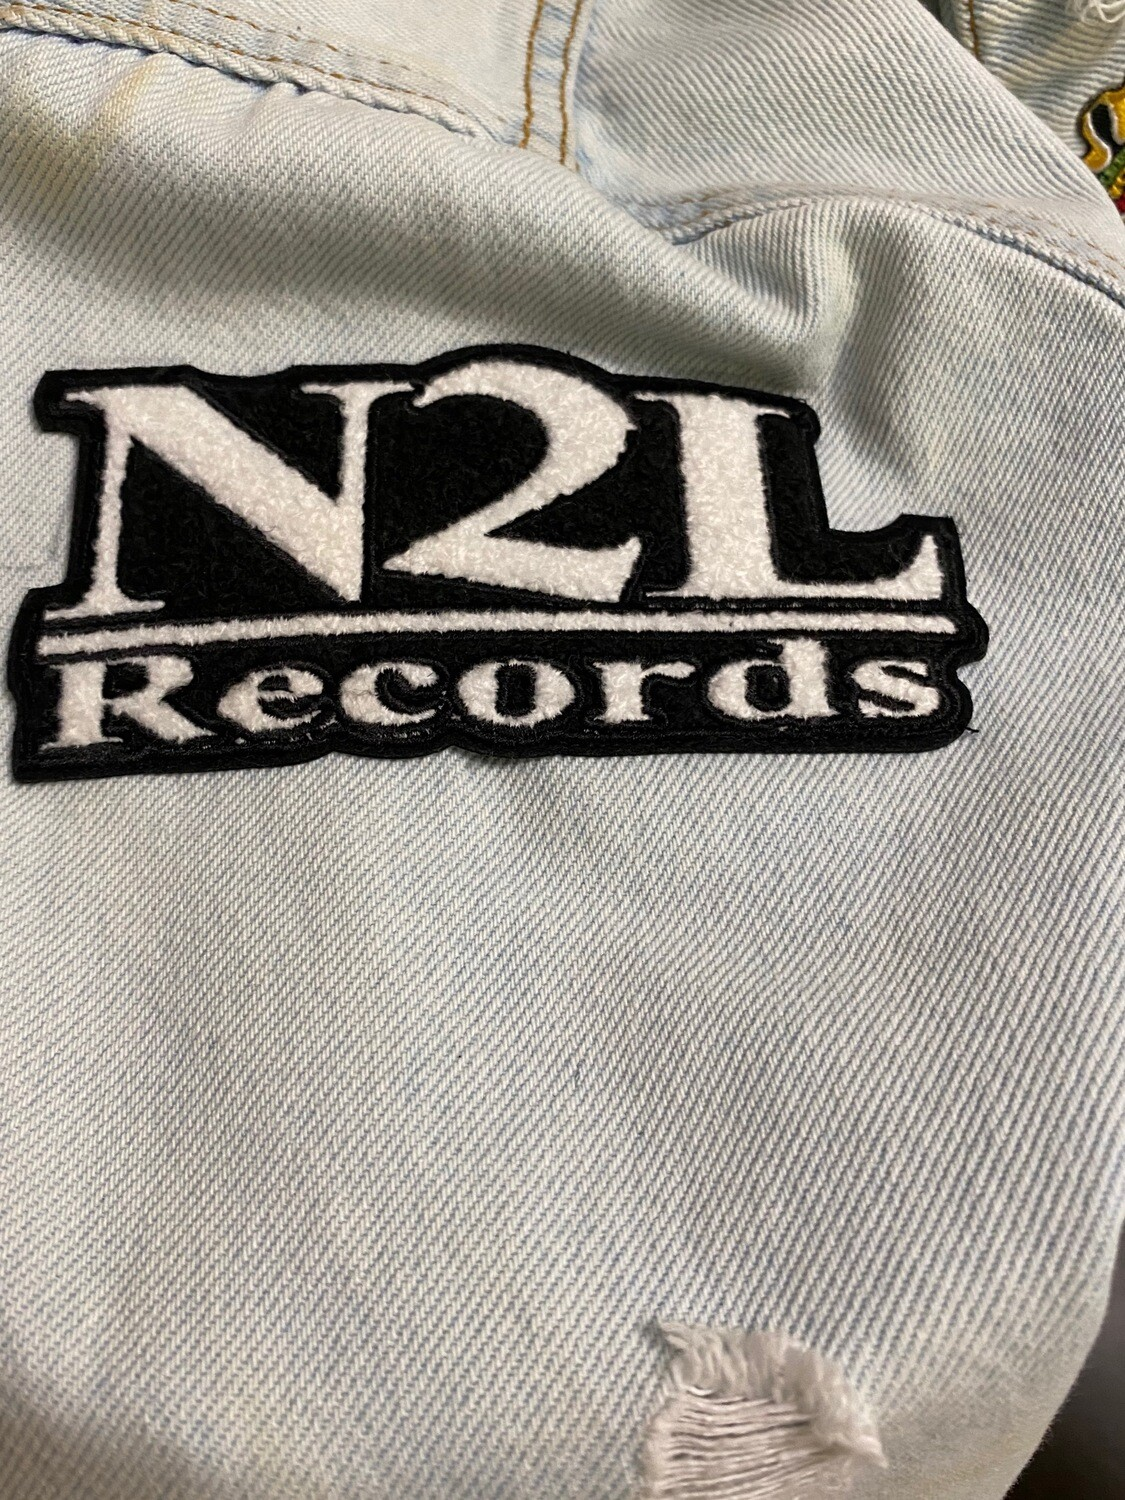 N2L CHENILLE LOGO PATCHES (IRON ON)